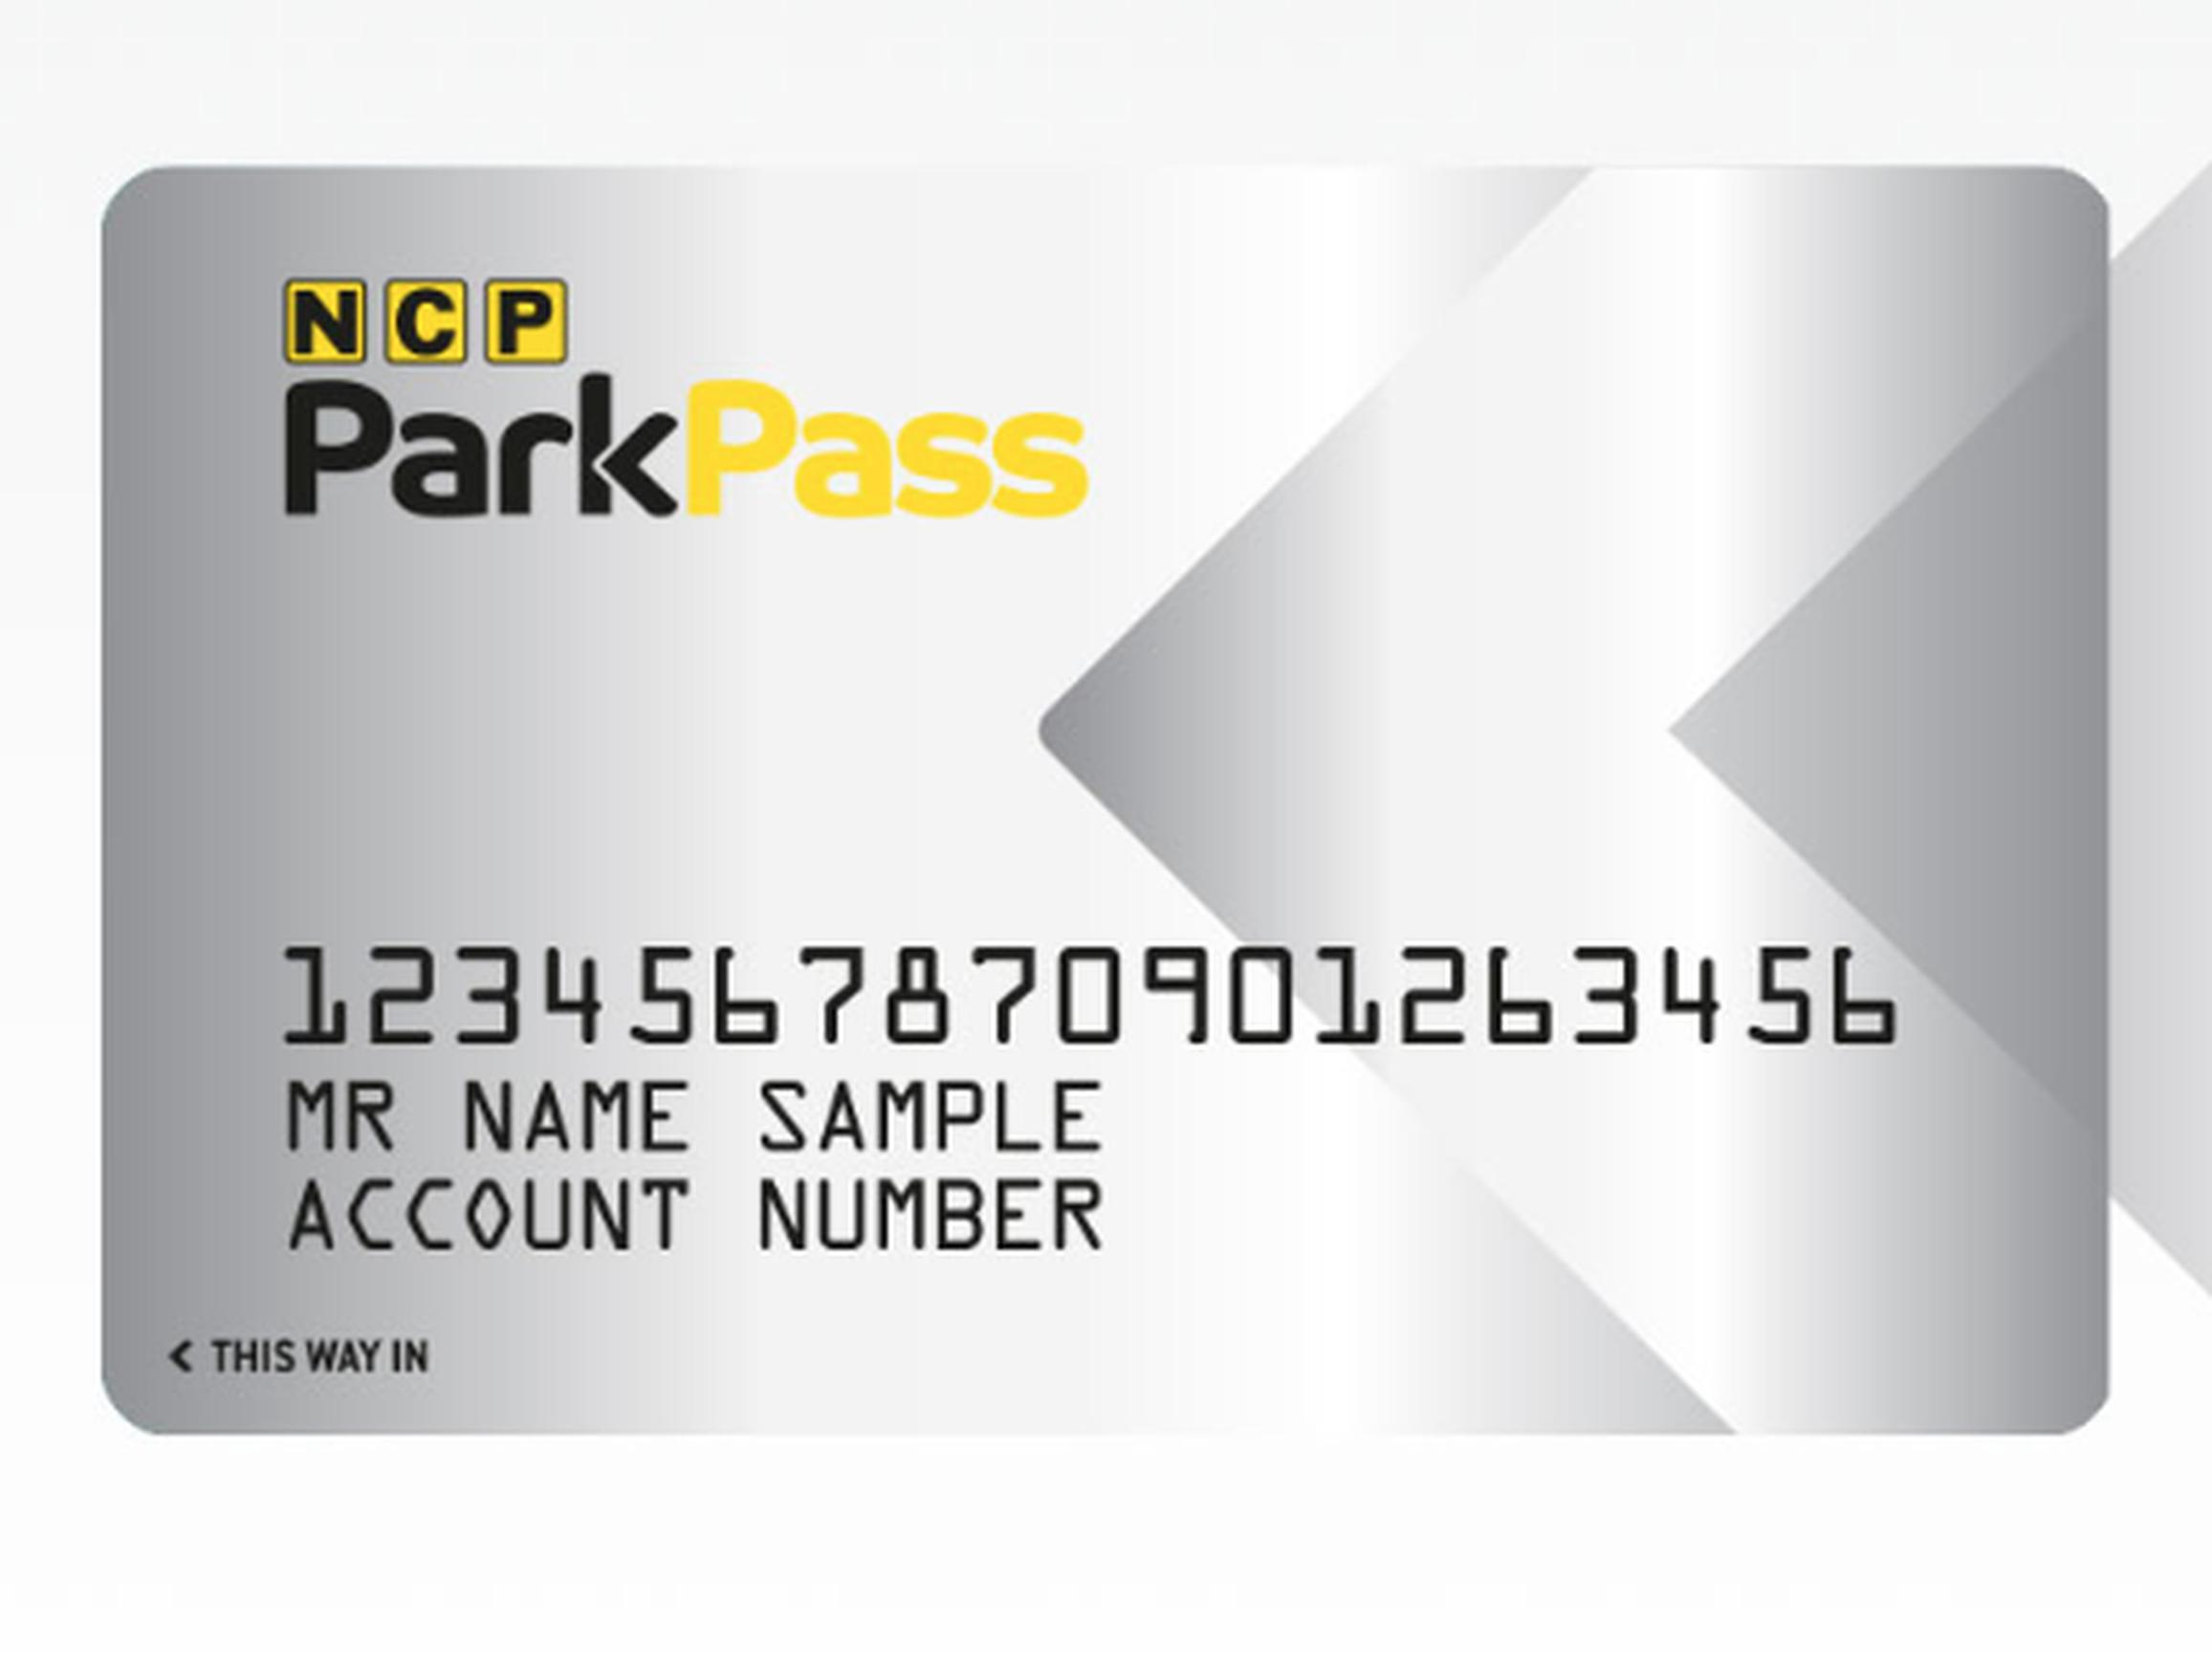 NCP launches nationwide cashless card service